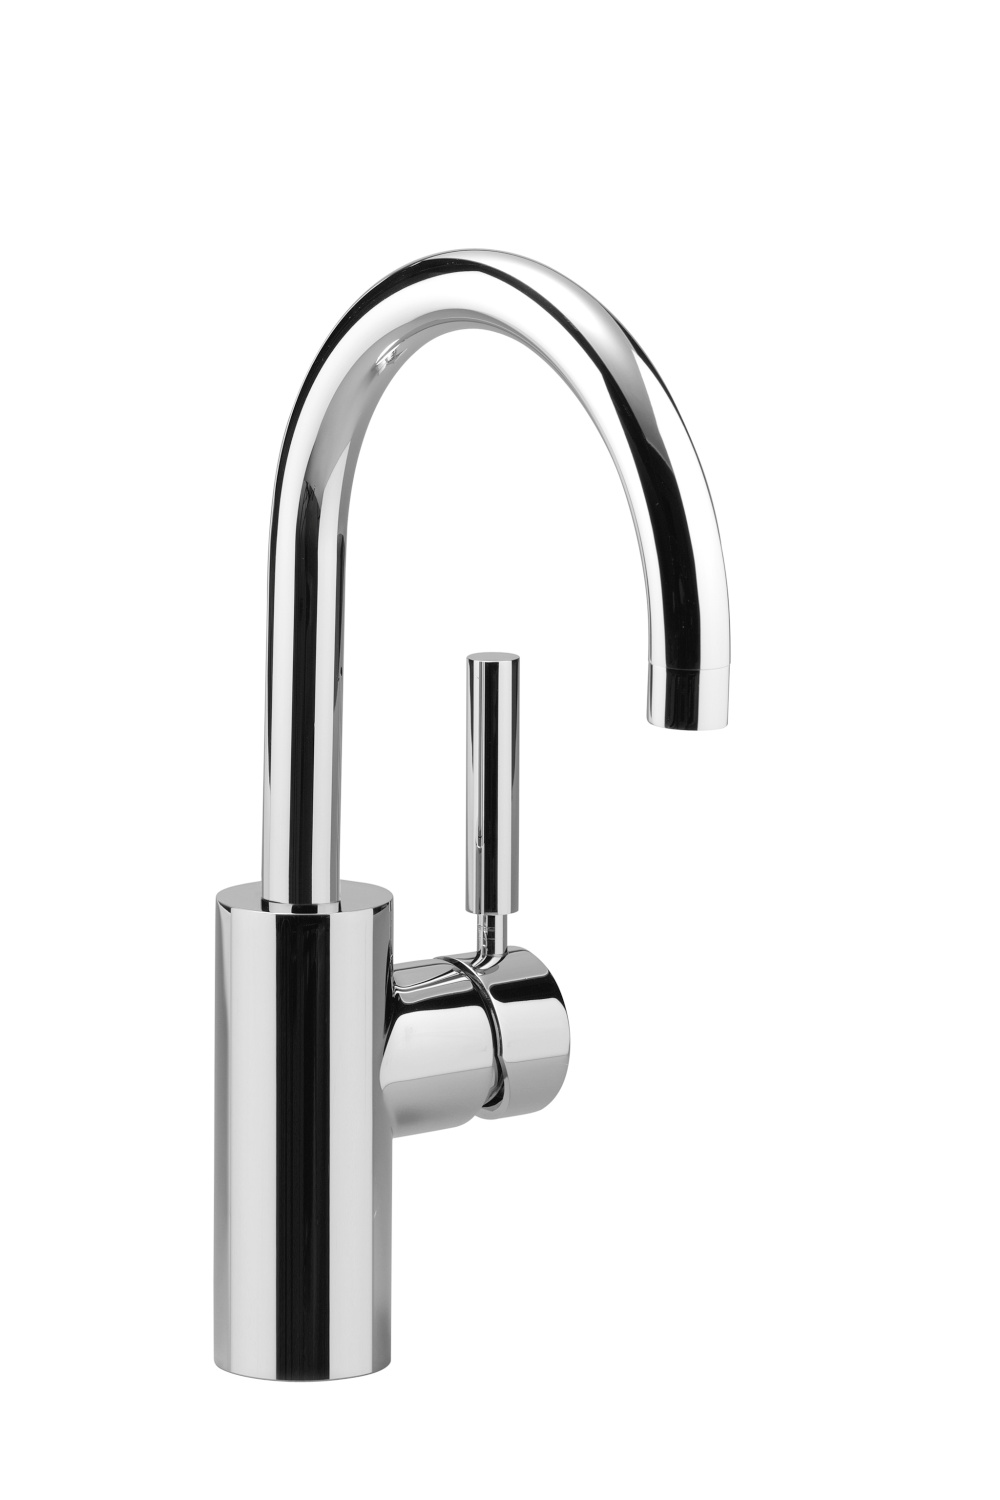 Single-lever basin mixer with pop-up waste - polished chrome - 33 515 885-00